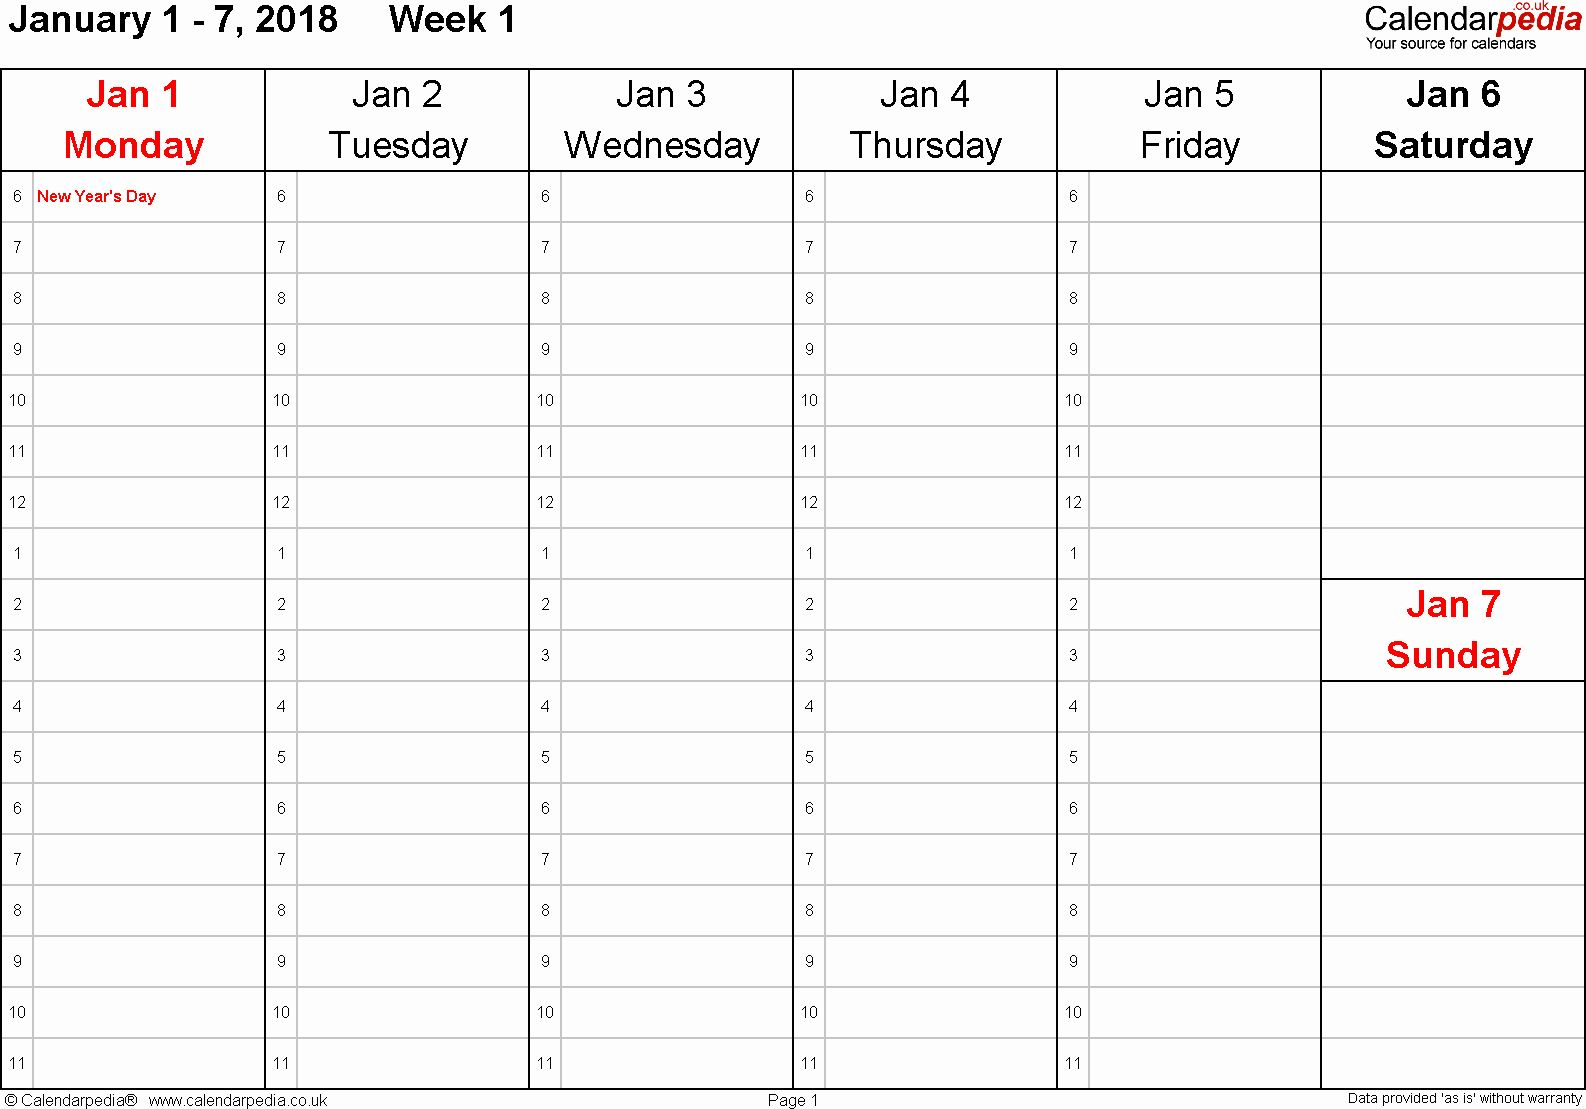 One Week Calendar With Hours Unique Weekly Calendar 2018 Uk Free Printable Templates For Pdf Calendar Template Calendar Printables Weekly Calendar Printable